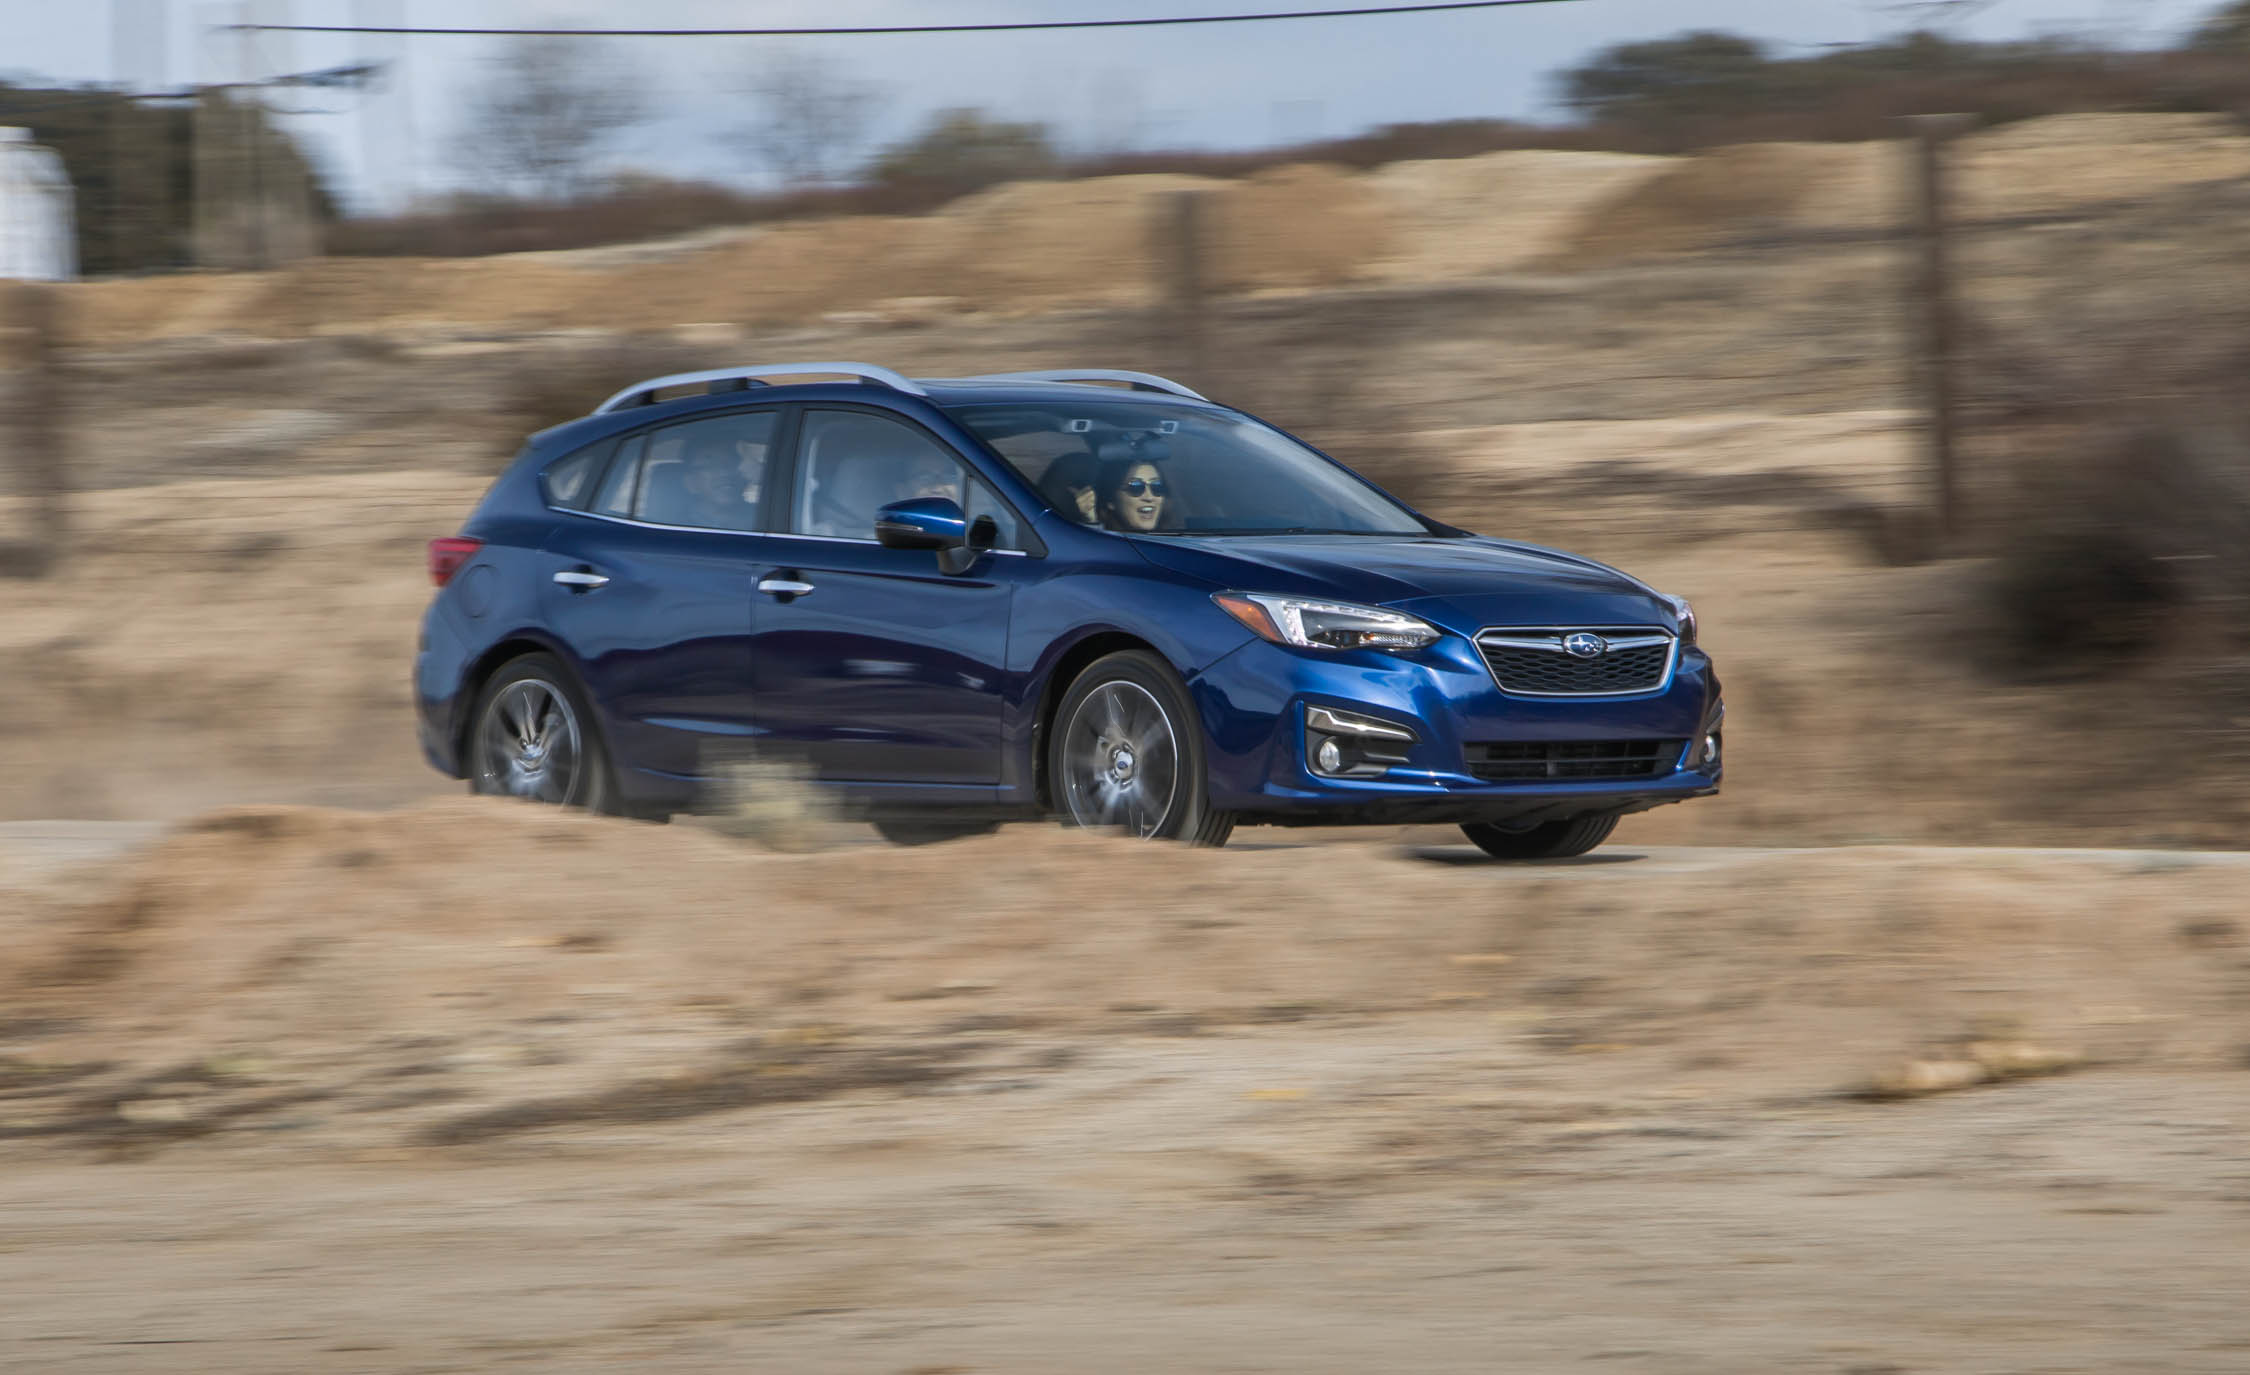 2017 Subaru Impreza Hatchback (Photo 21 of 33)